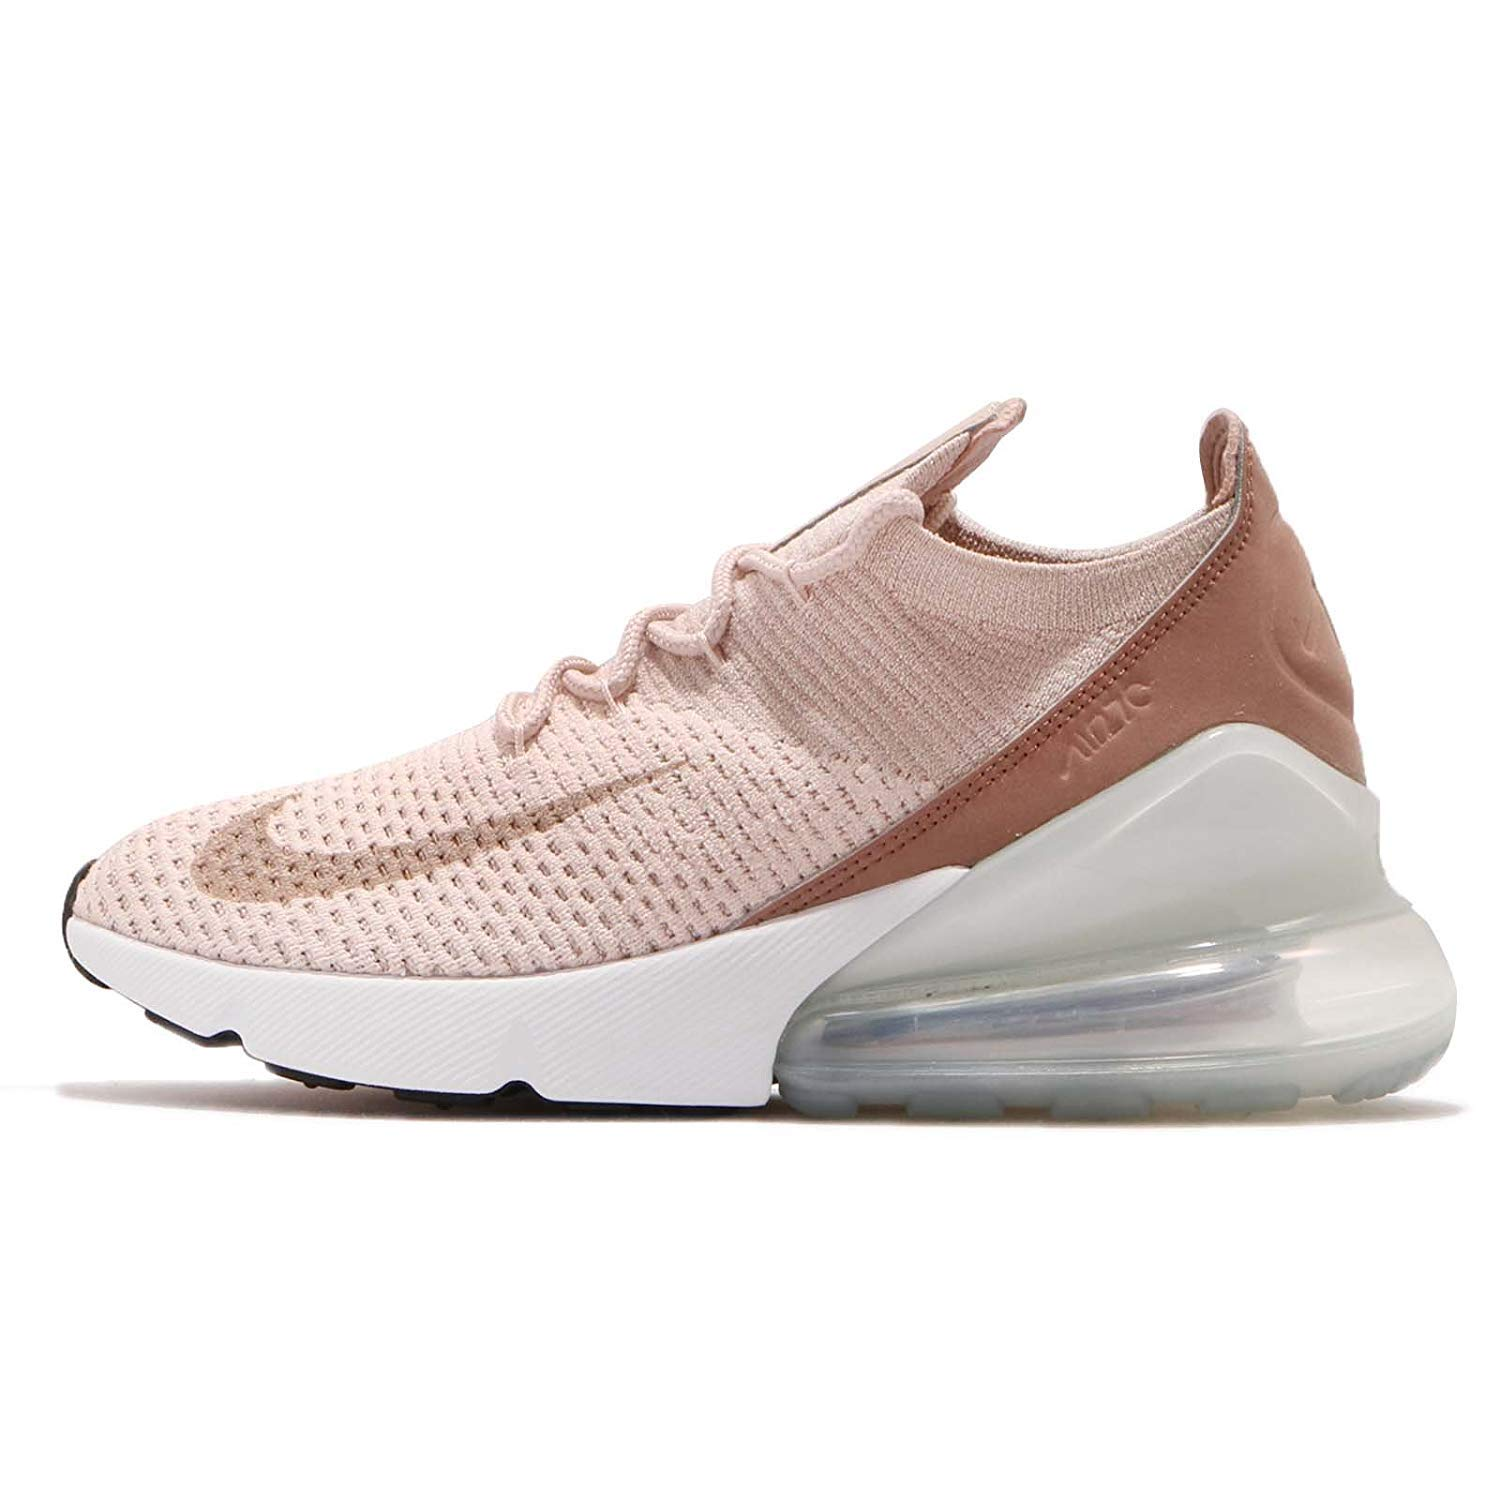 4250ff4bb1 Galleon - Nike Women's WMNS Air Max 270 Flyknit, Guava ICE/Particle Beige,  8.5 US